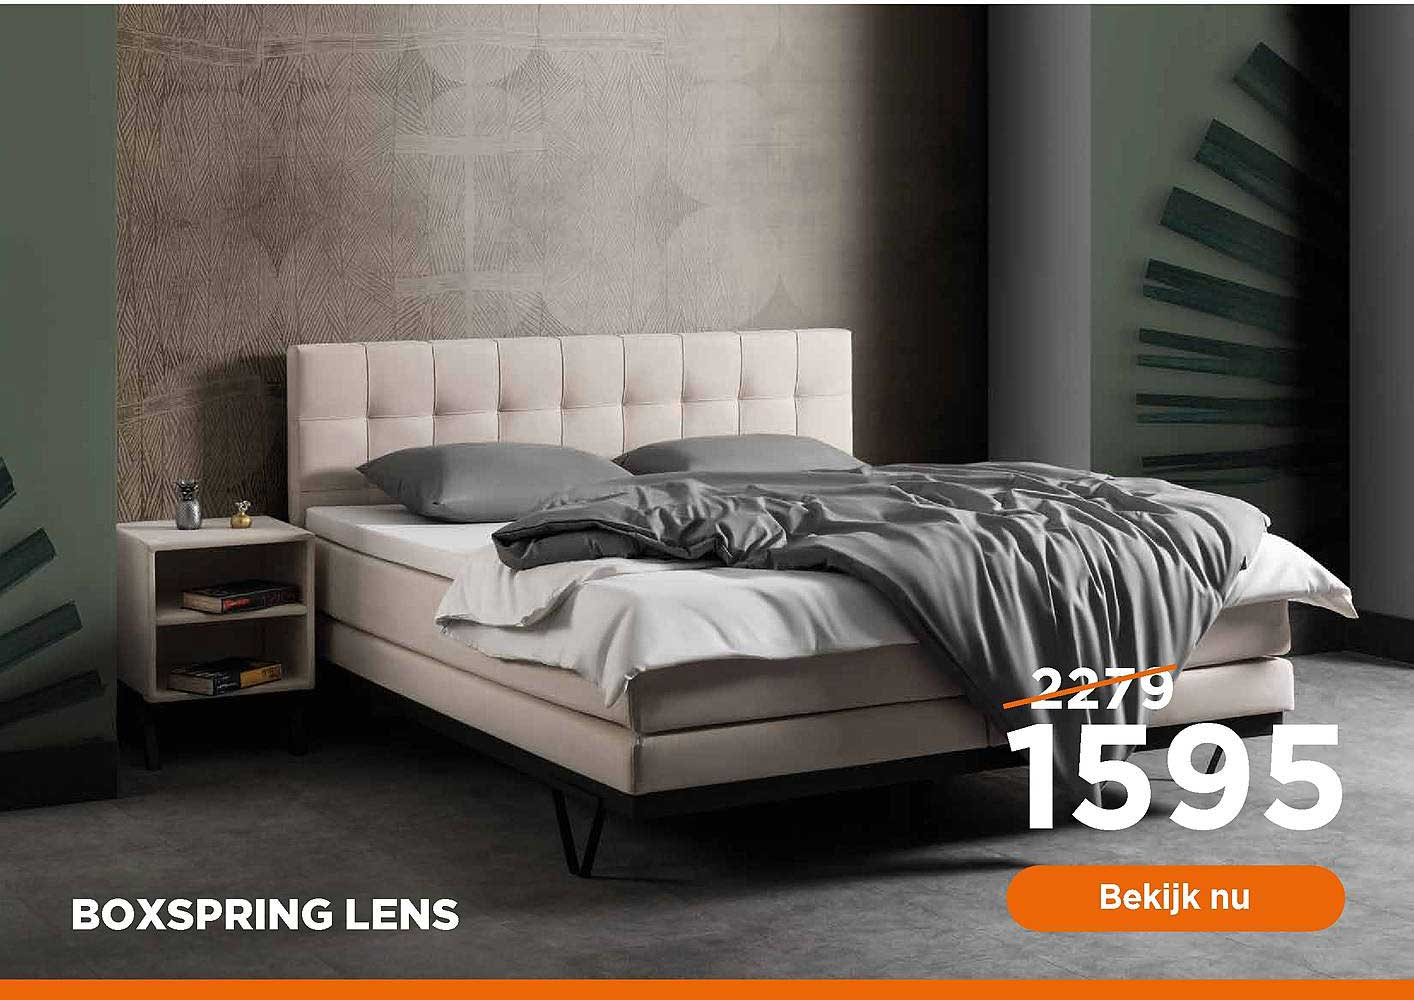 TotaalBED Boxspring Lens